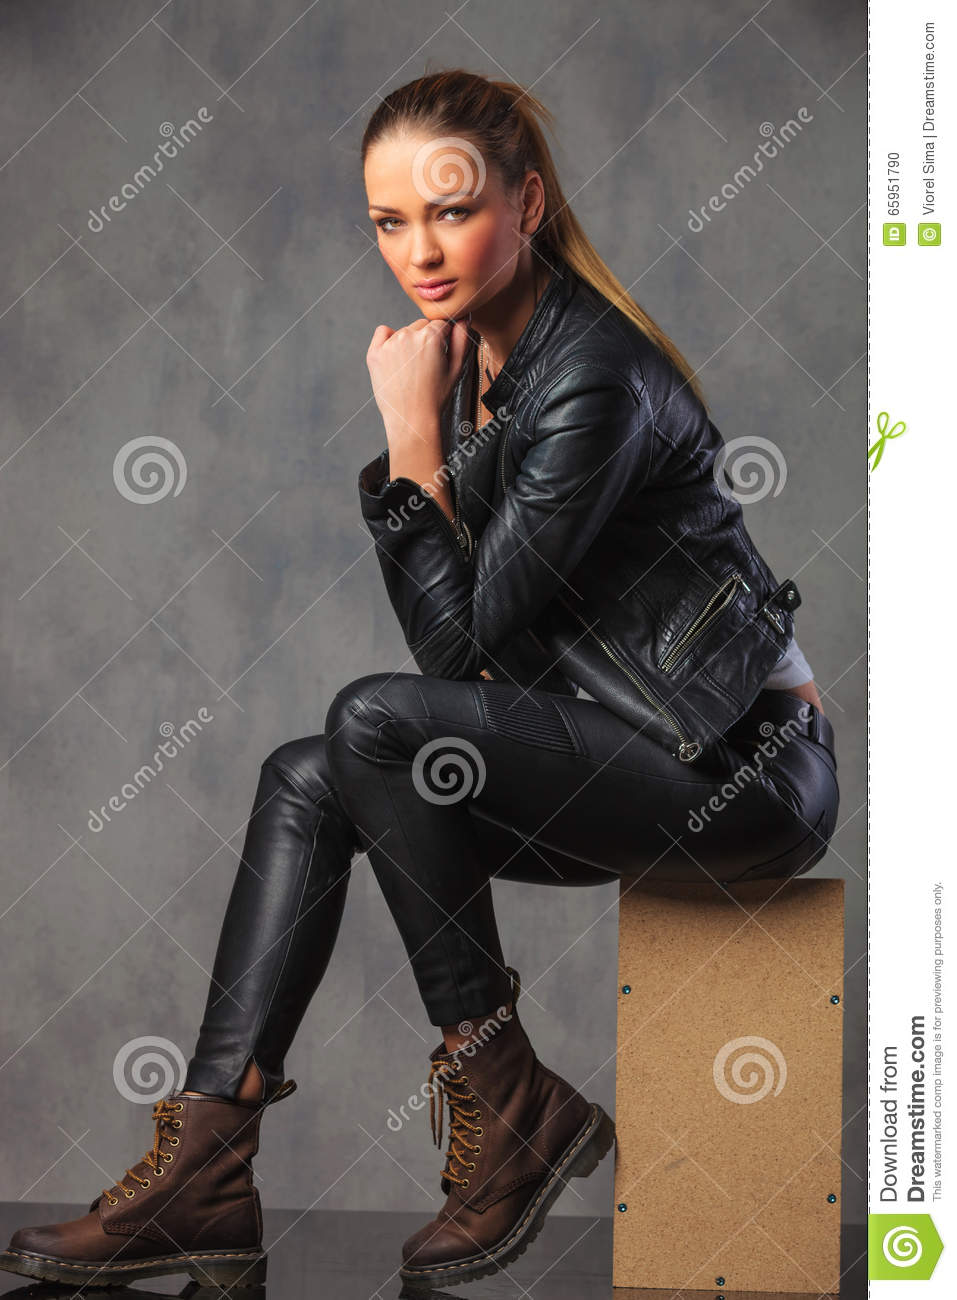 Fashionable girl in leather posing in studio background